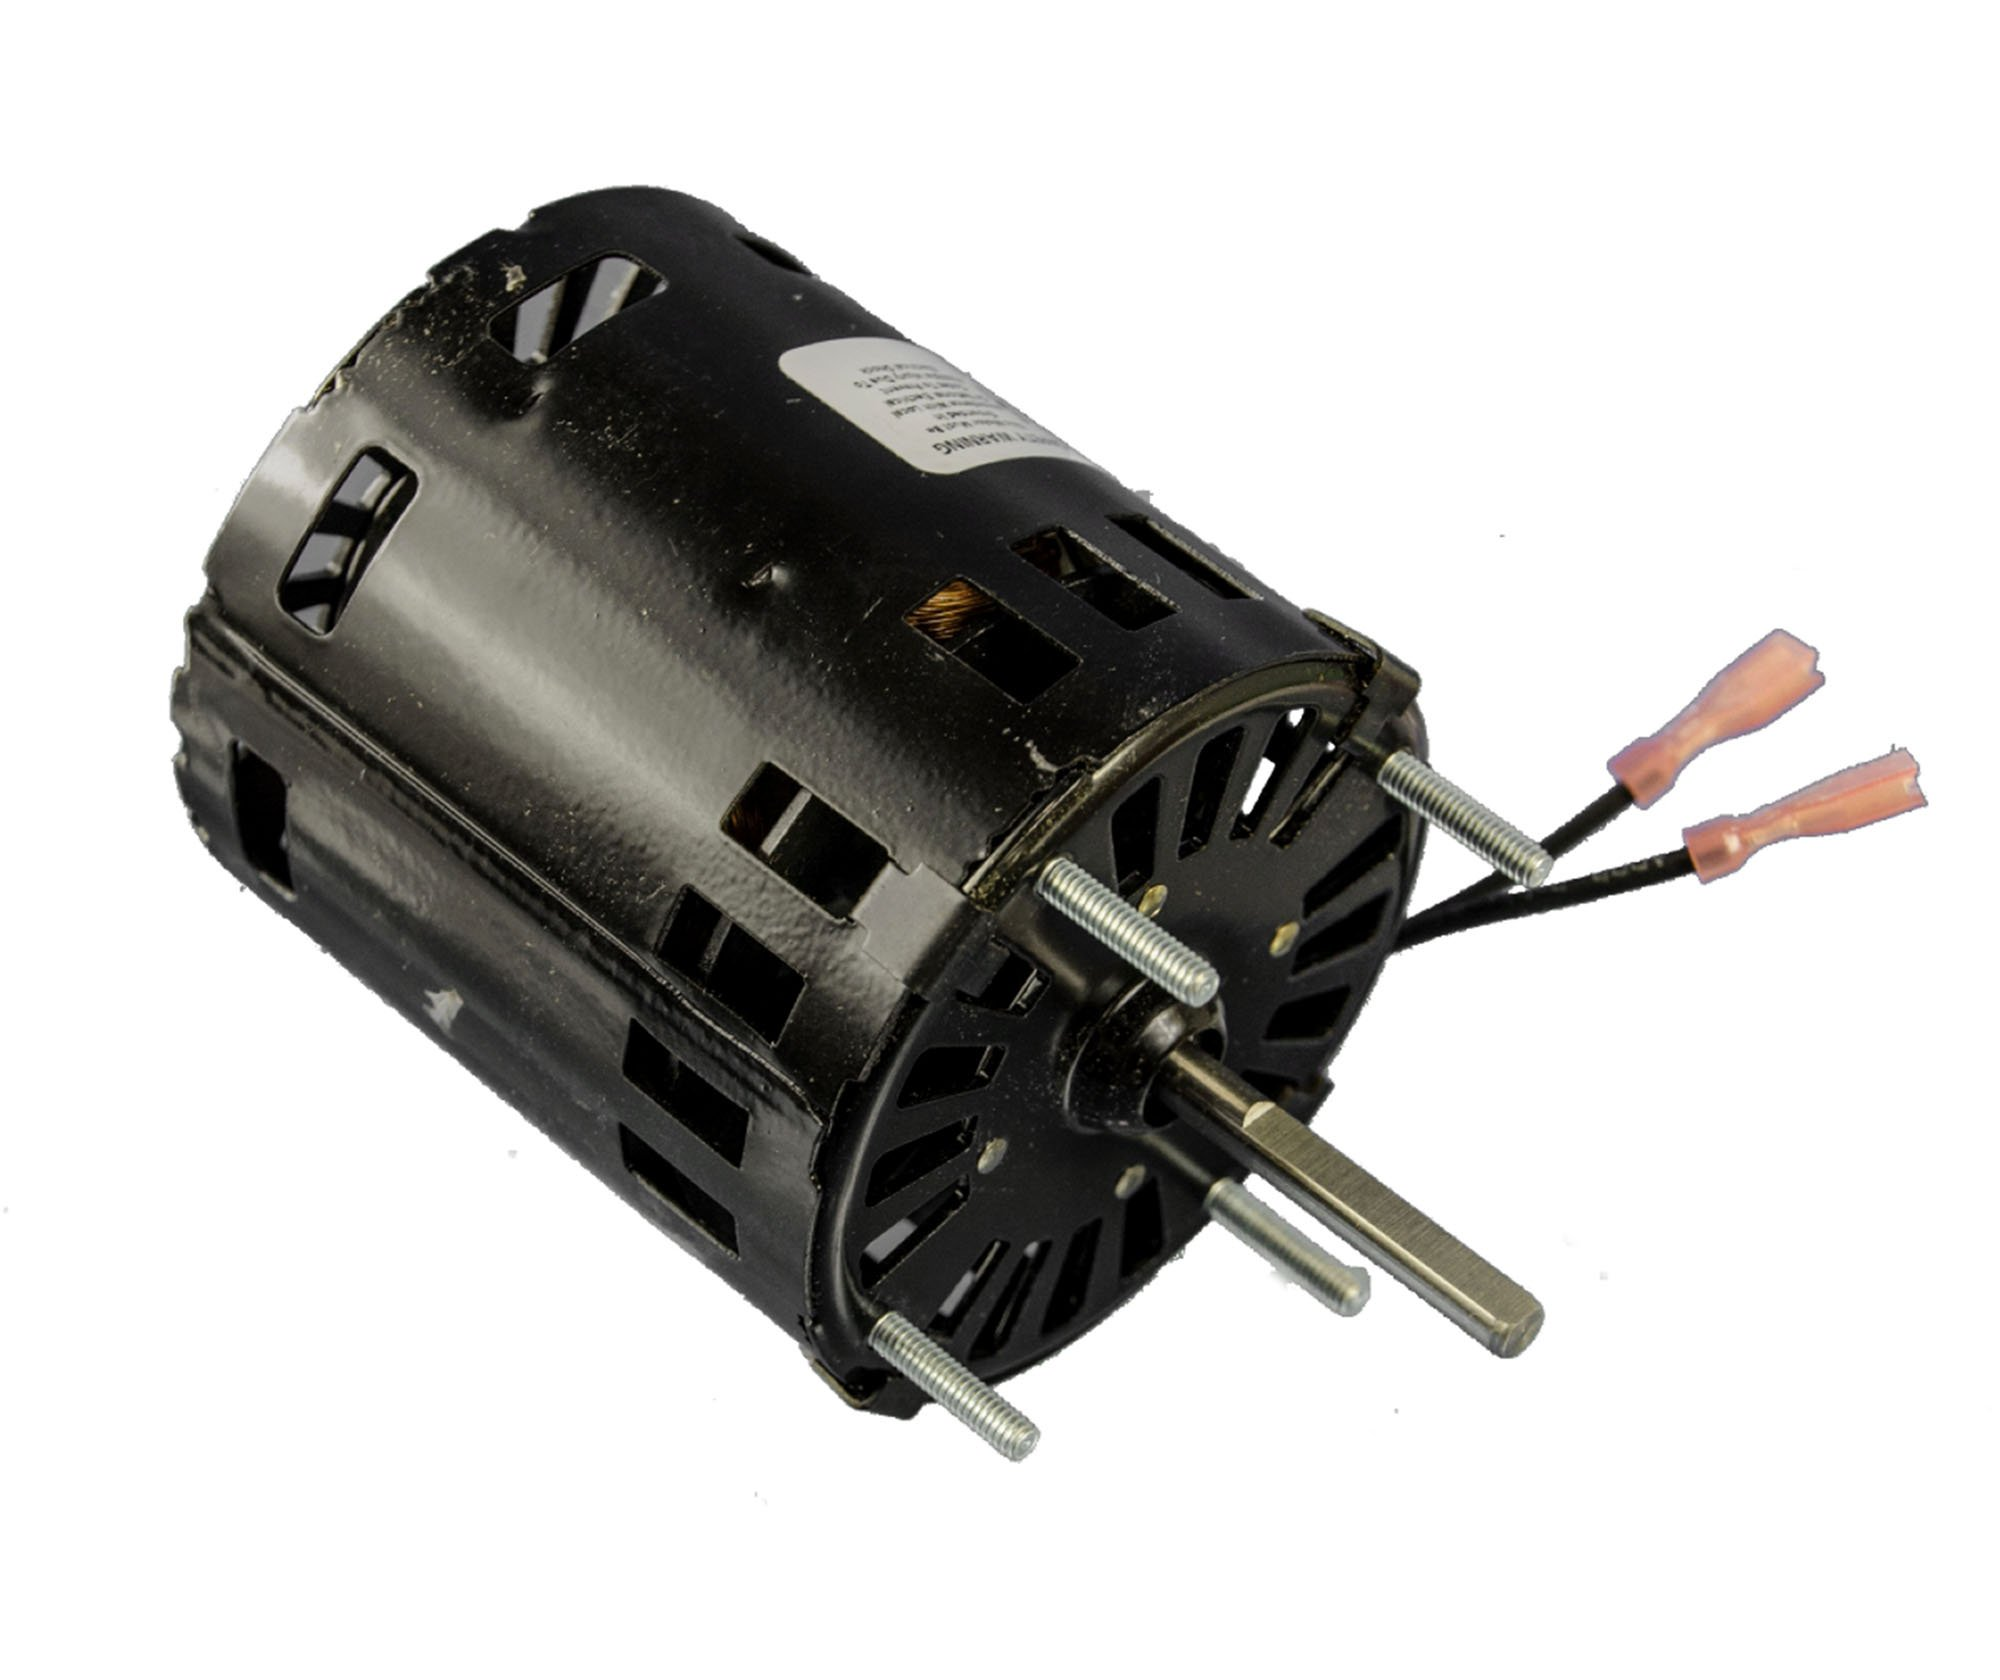 Fasco D1110 3.3'' Frame Shaded Pole Aprilaire OEM Replacement Motor with Ball Bearing, 1/55HP, 1300rpm, 115V, 60 Hz, 0.7amps